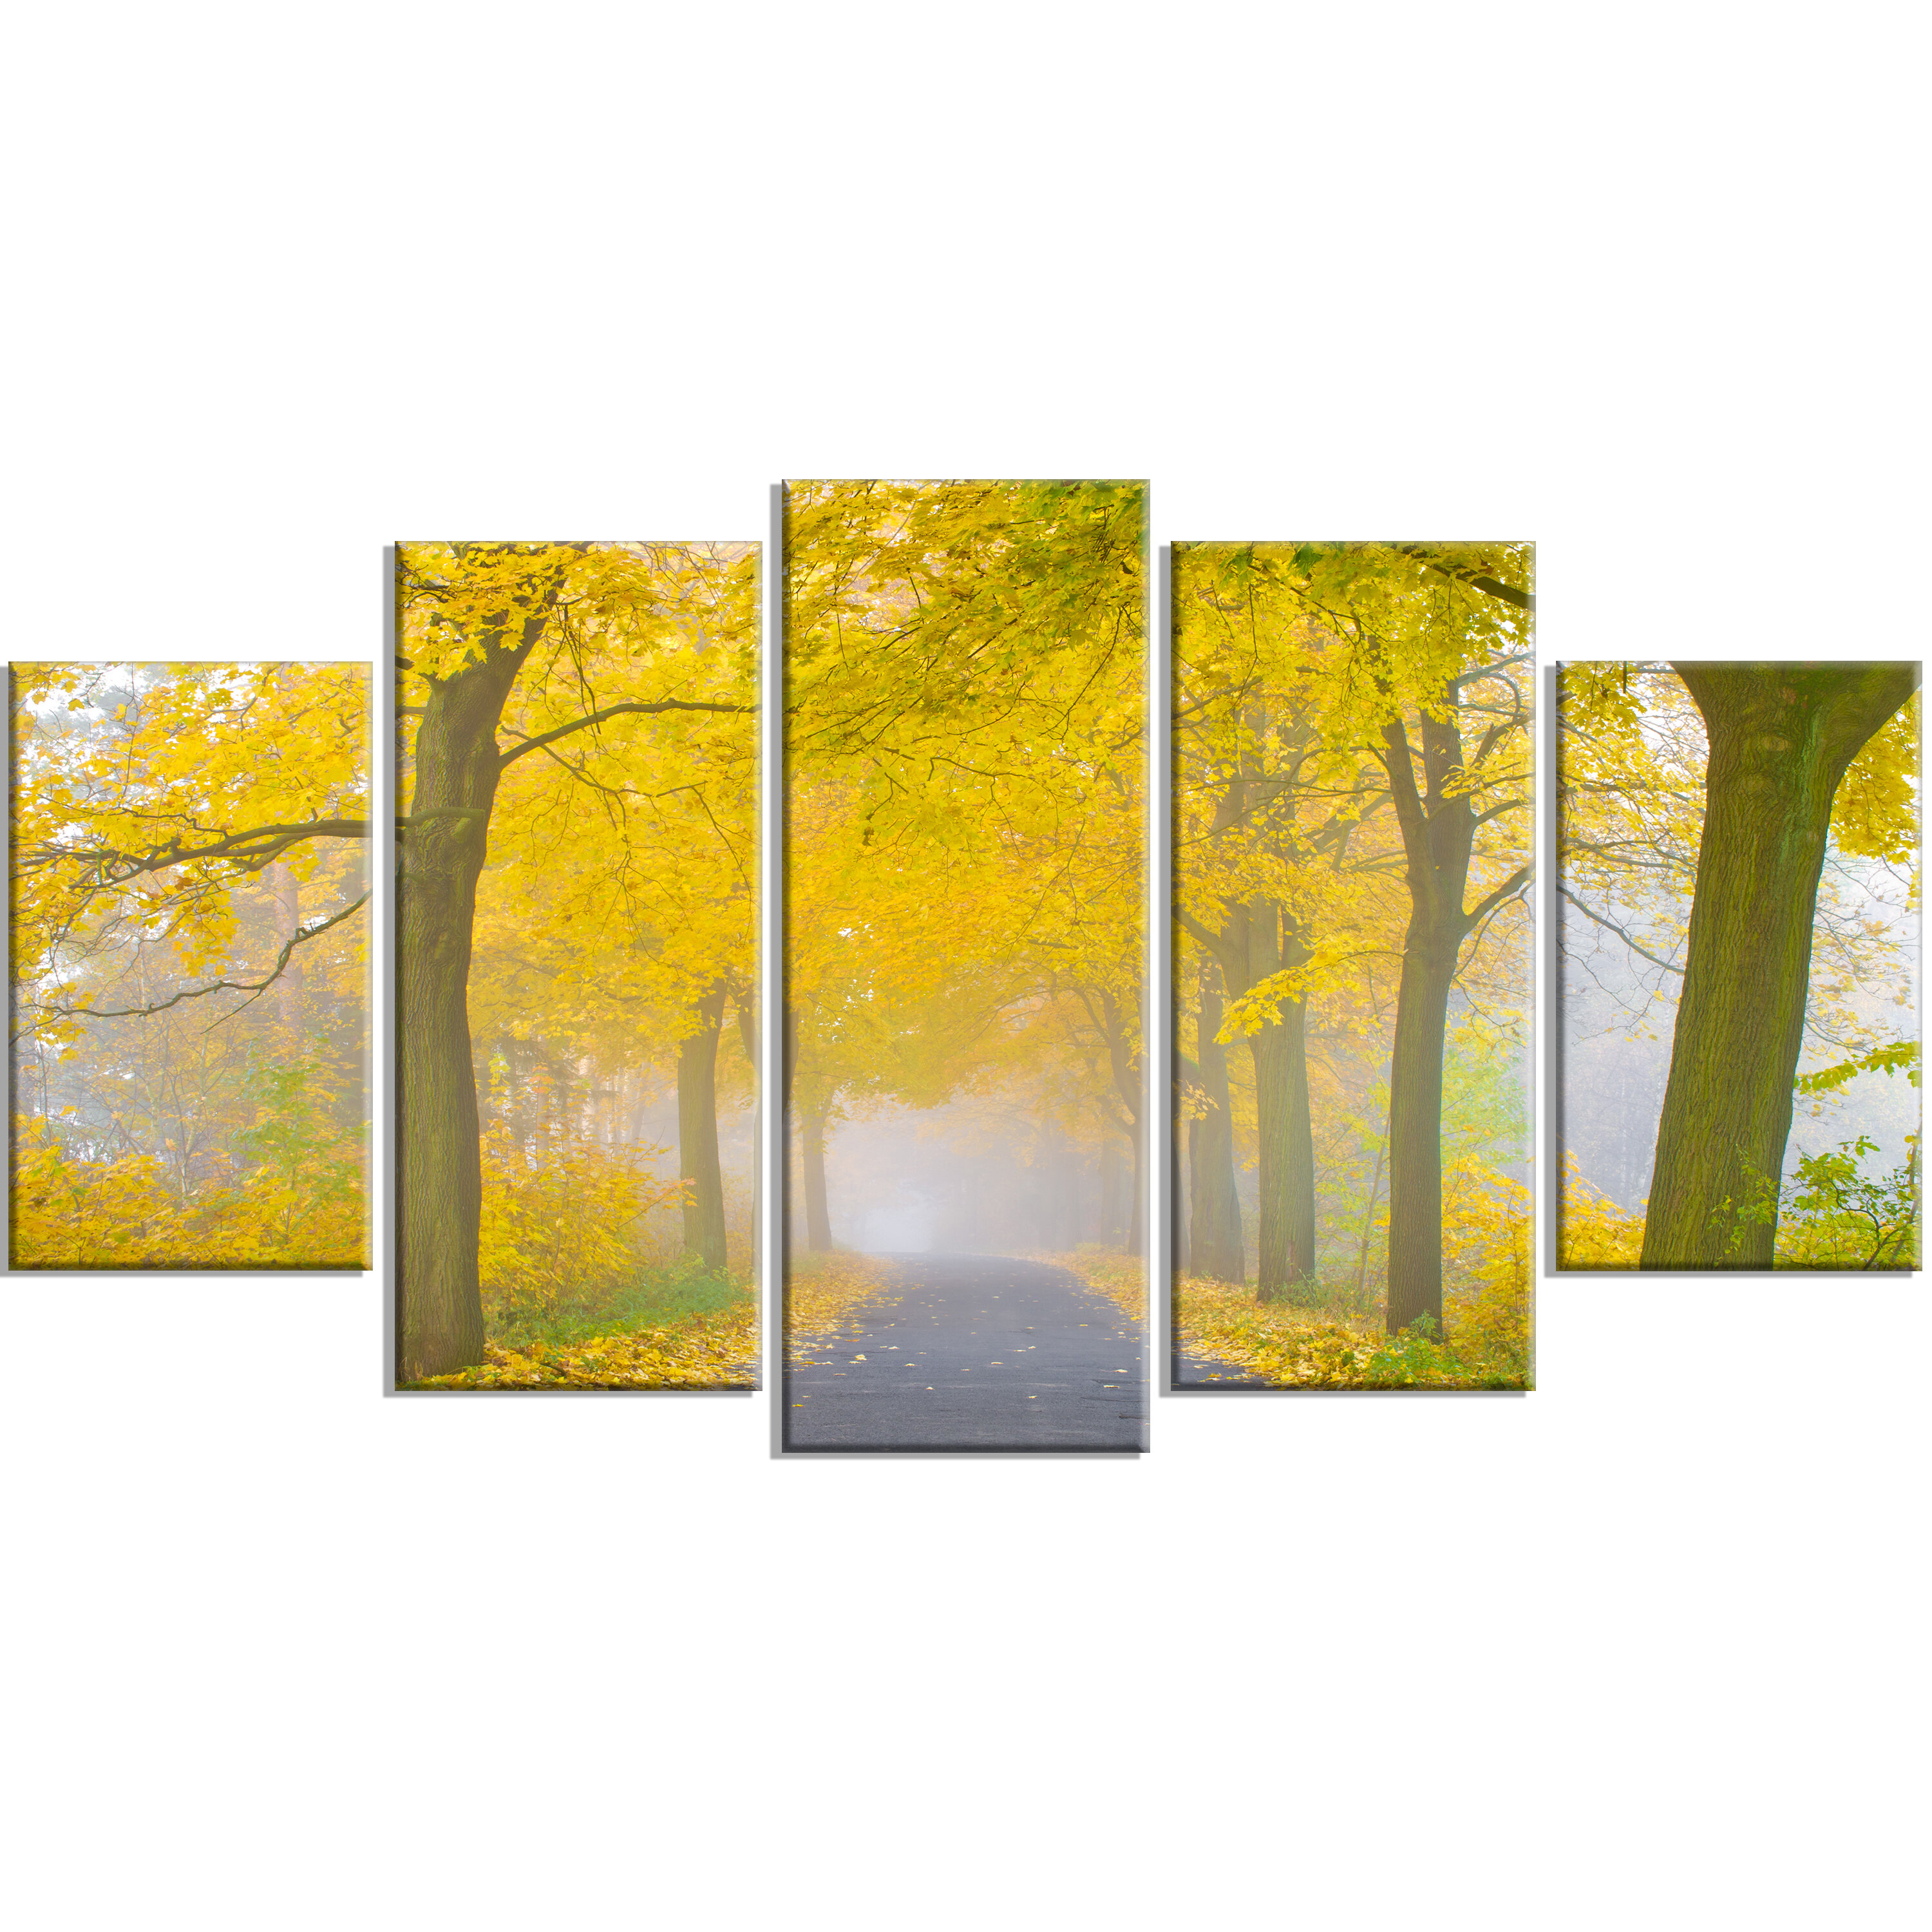 DesignArt \'Misty Road in Yellow Autumn Forest\' 5 Piece Wall Art on ...